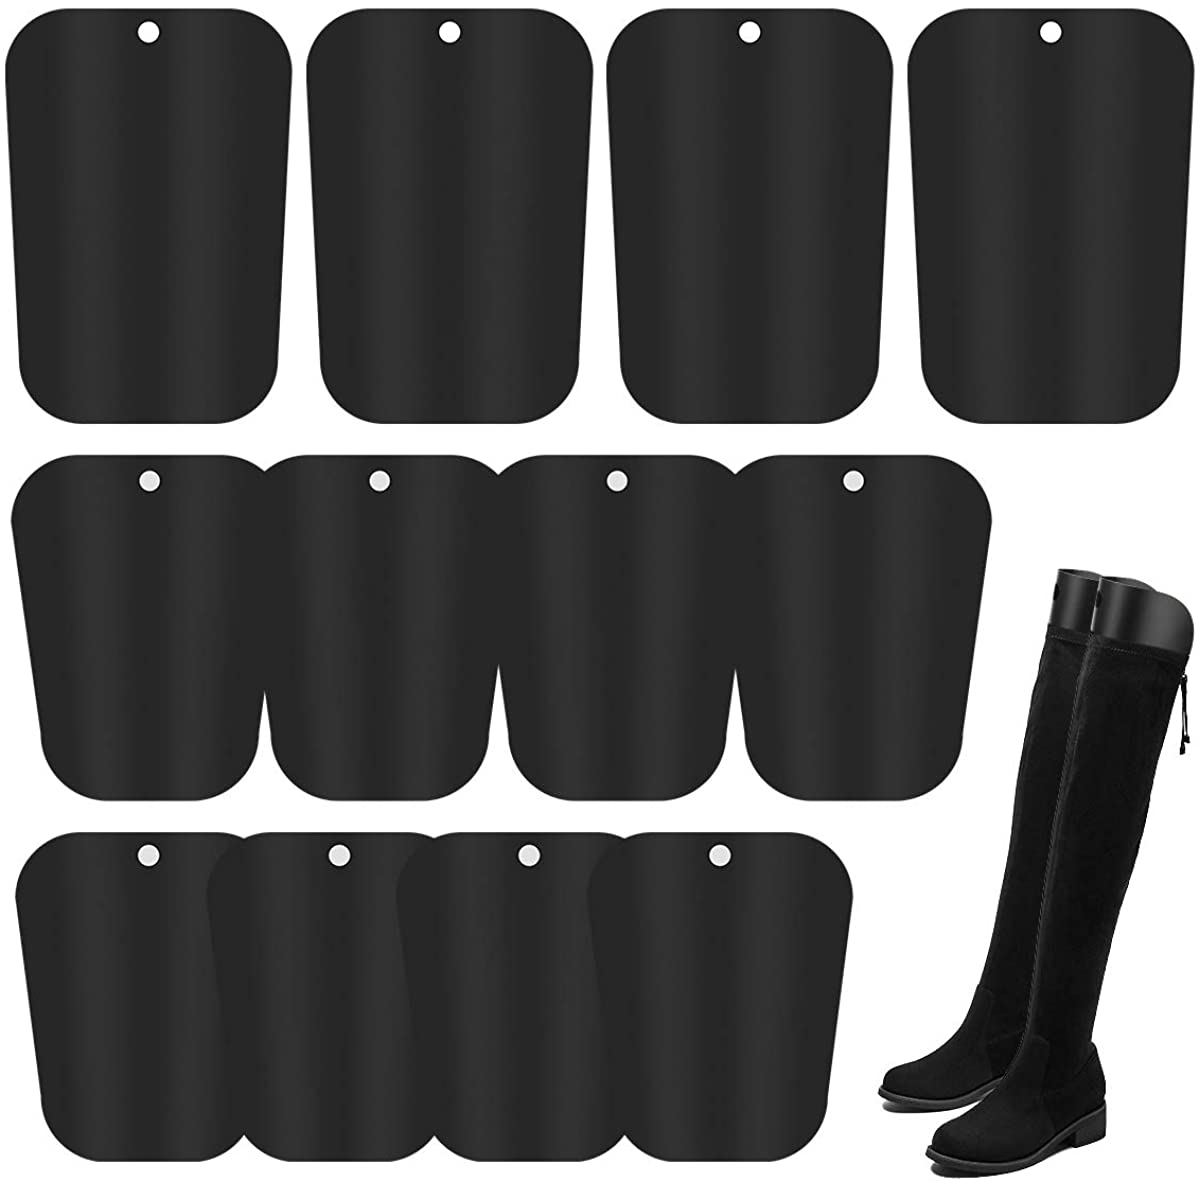 AHIER 6 Pairs Boot Shapers, 3 Size Boot Shaper Form Inserts 12/14/16inch, Tall Boot Support for Women and Men Black